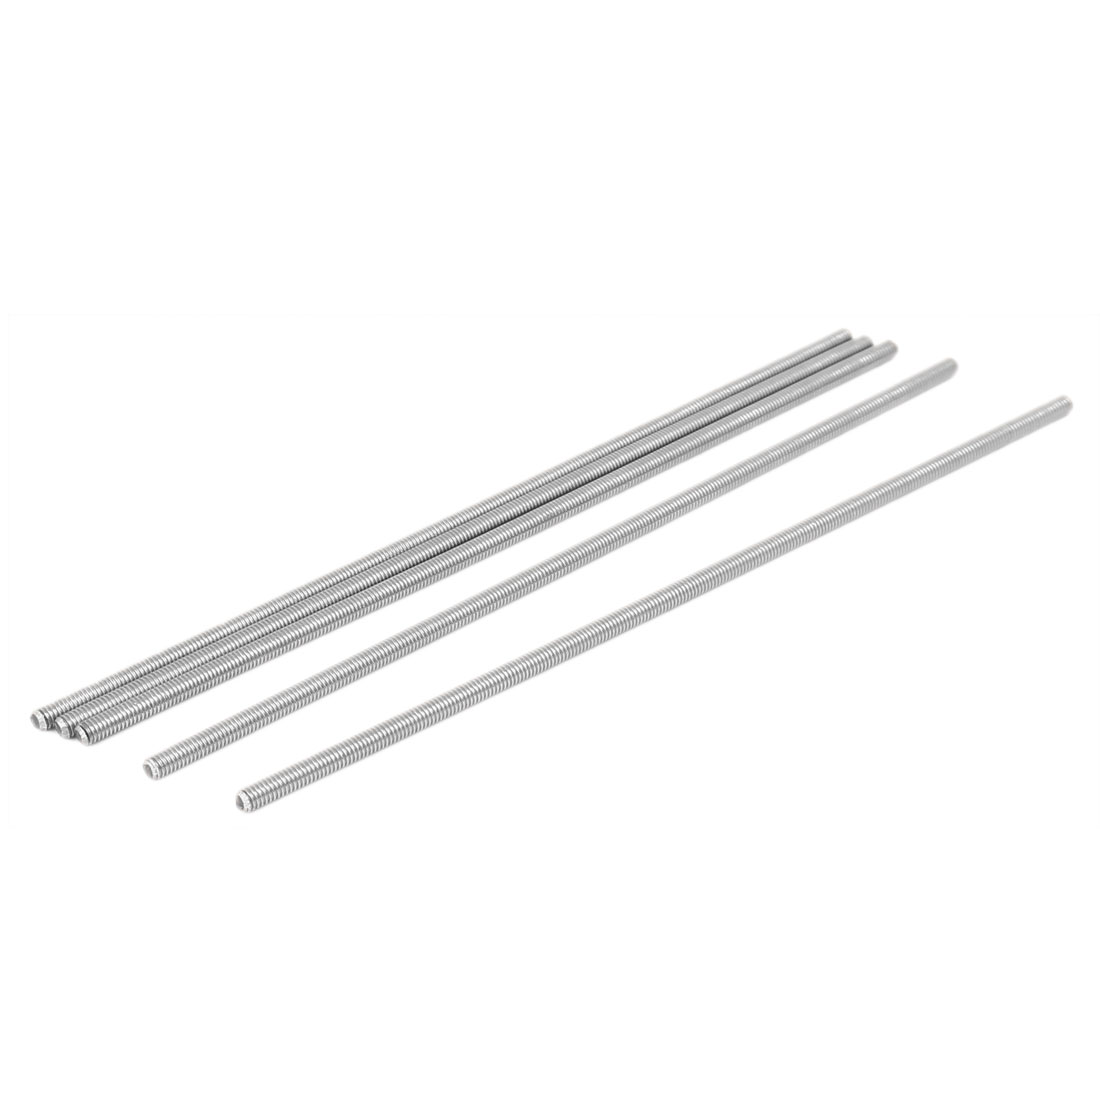 M4 x 170mm 304 Stainless Steel Fully Threaded Rod Bar Studs Silver Tone 5 Pcs